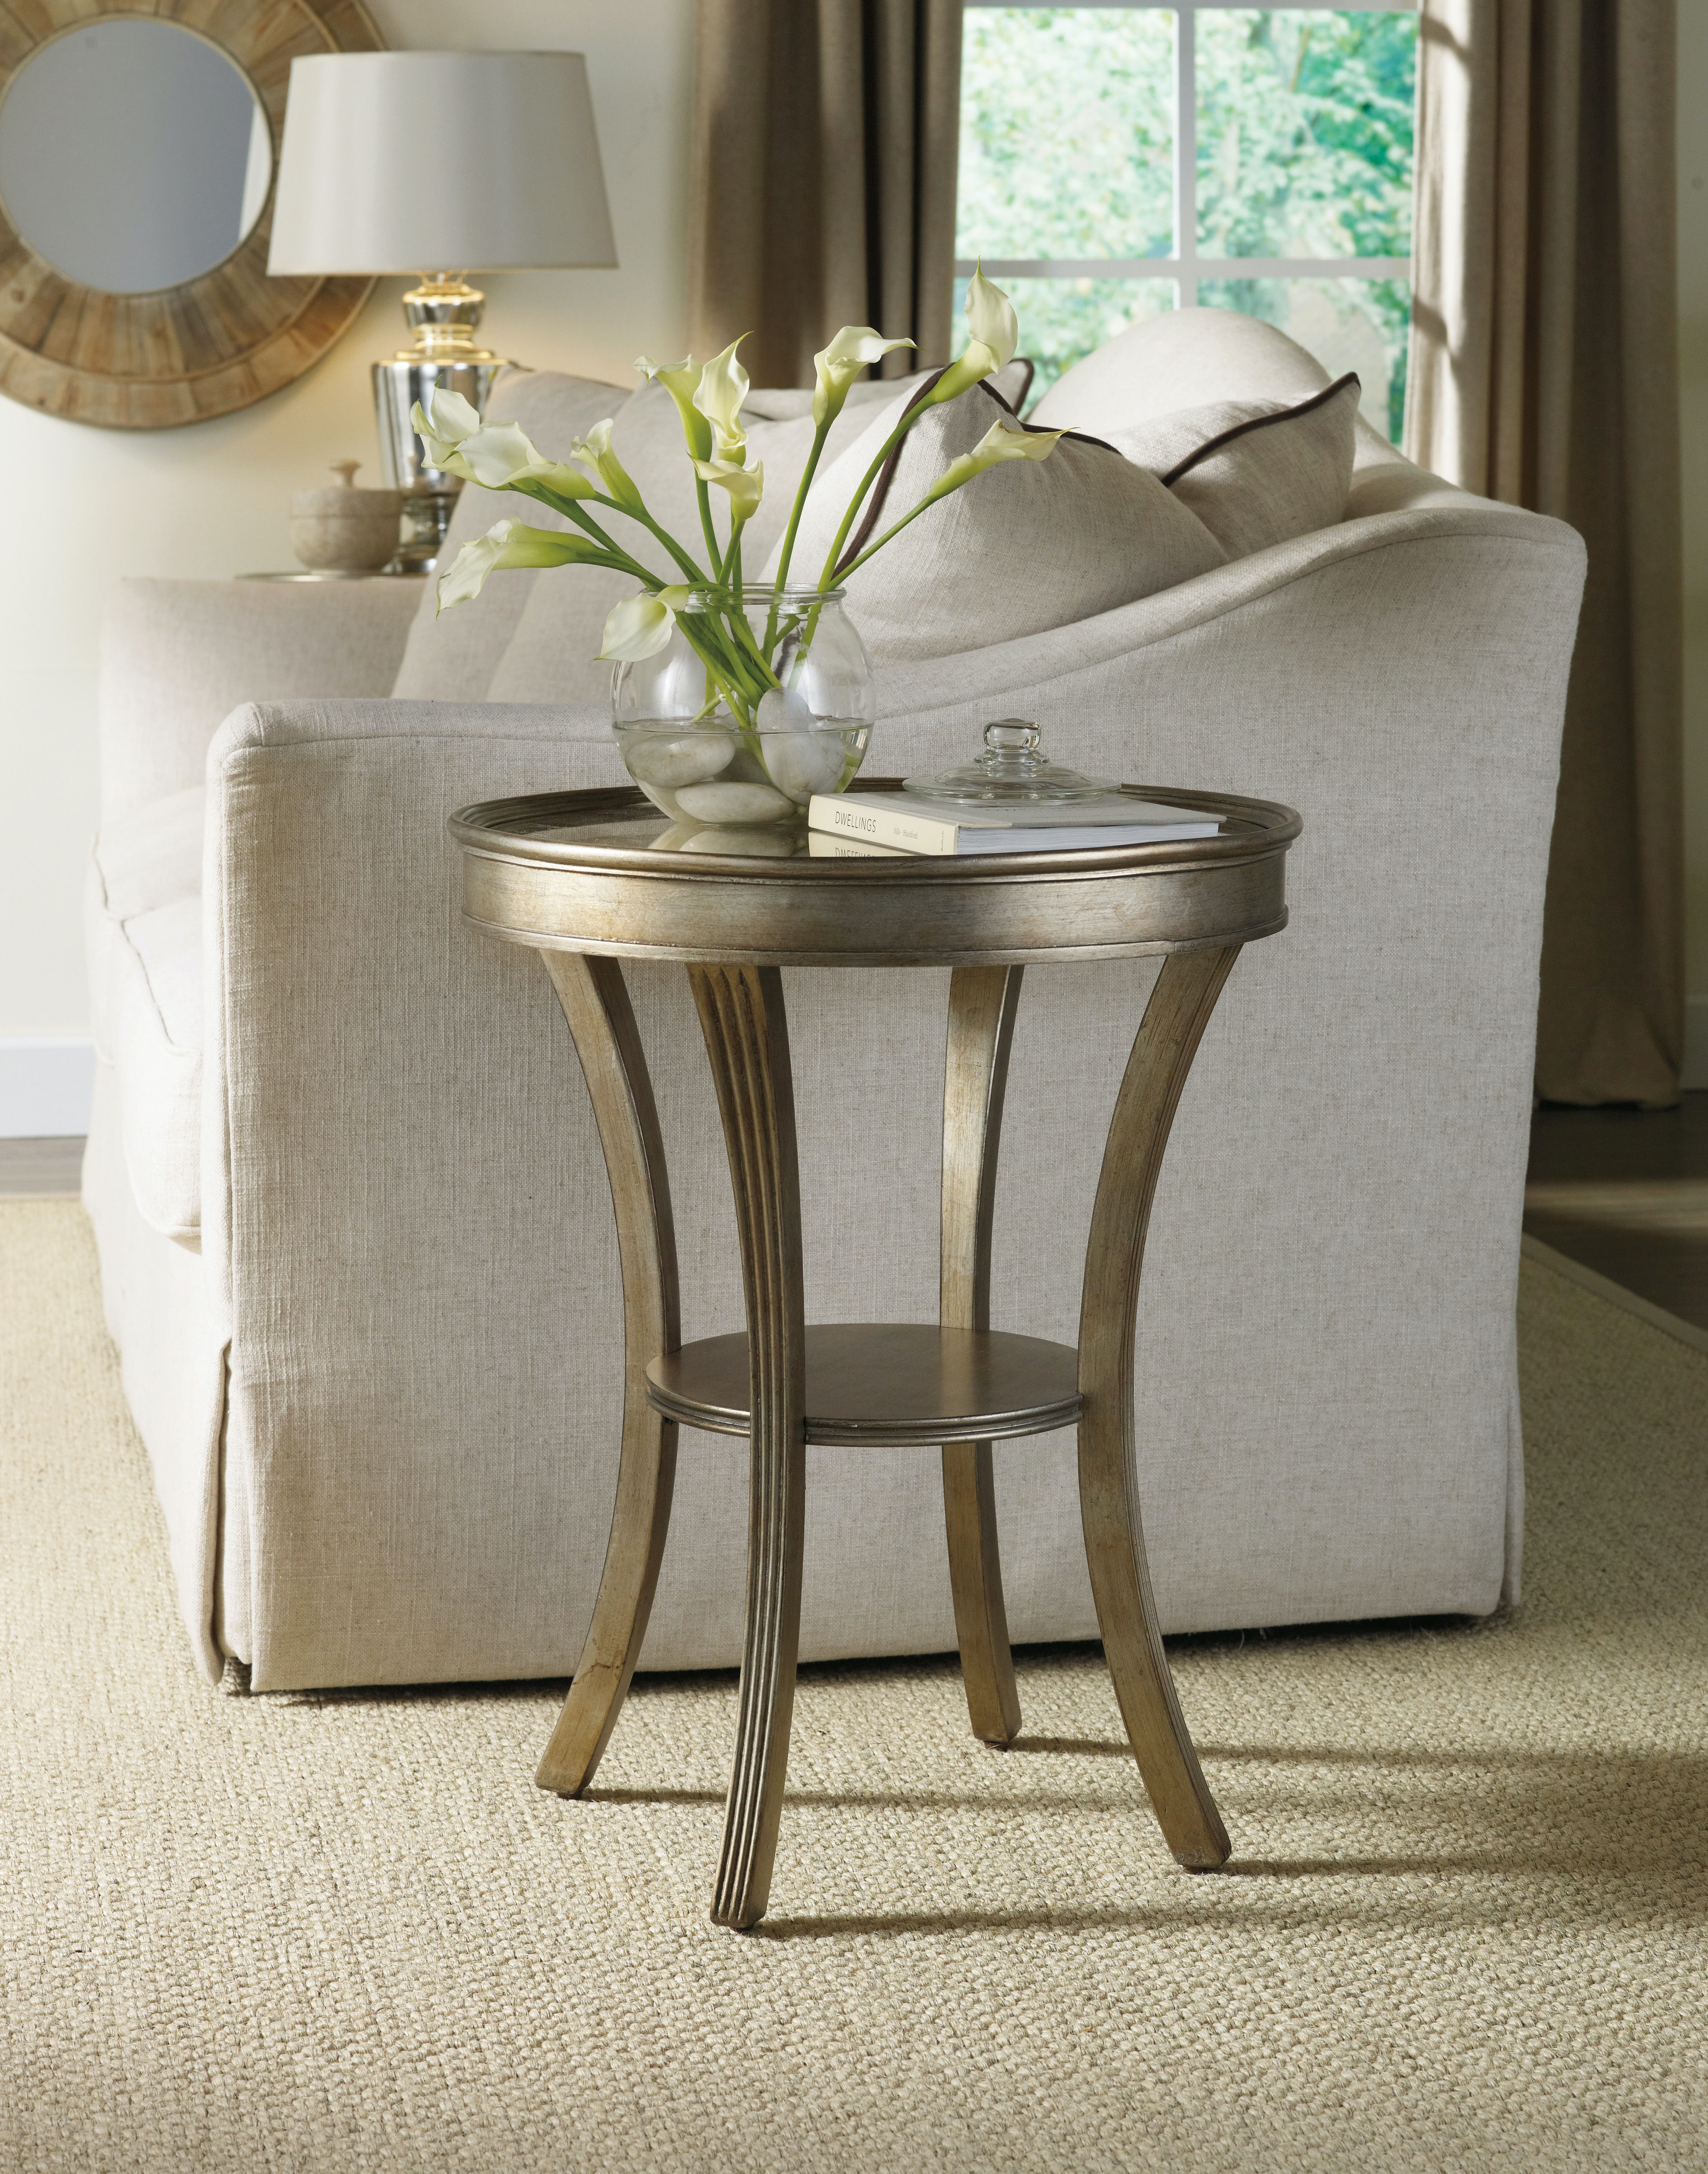 Hooker Furniture Living Room Sanctuary Round Mirrored Accent Table ...